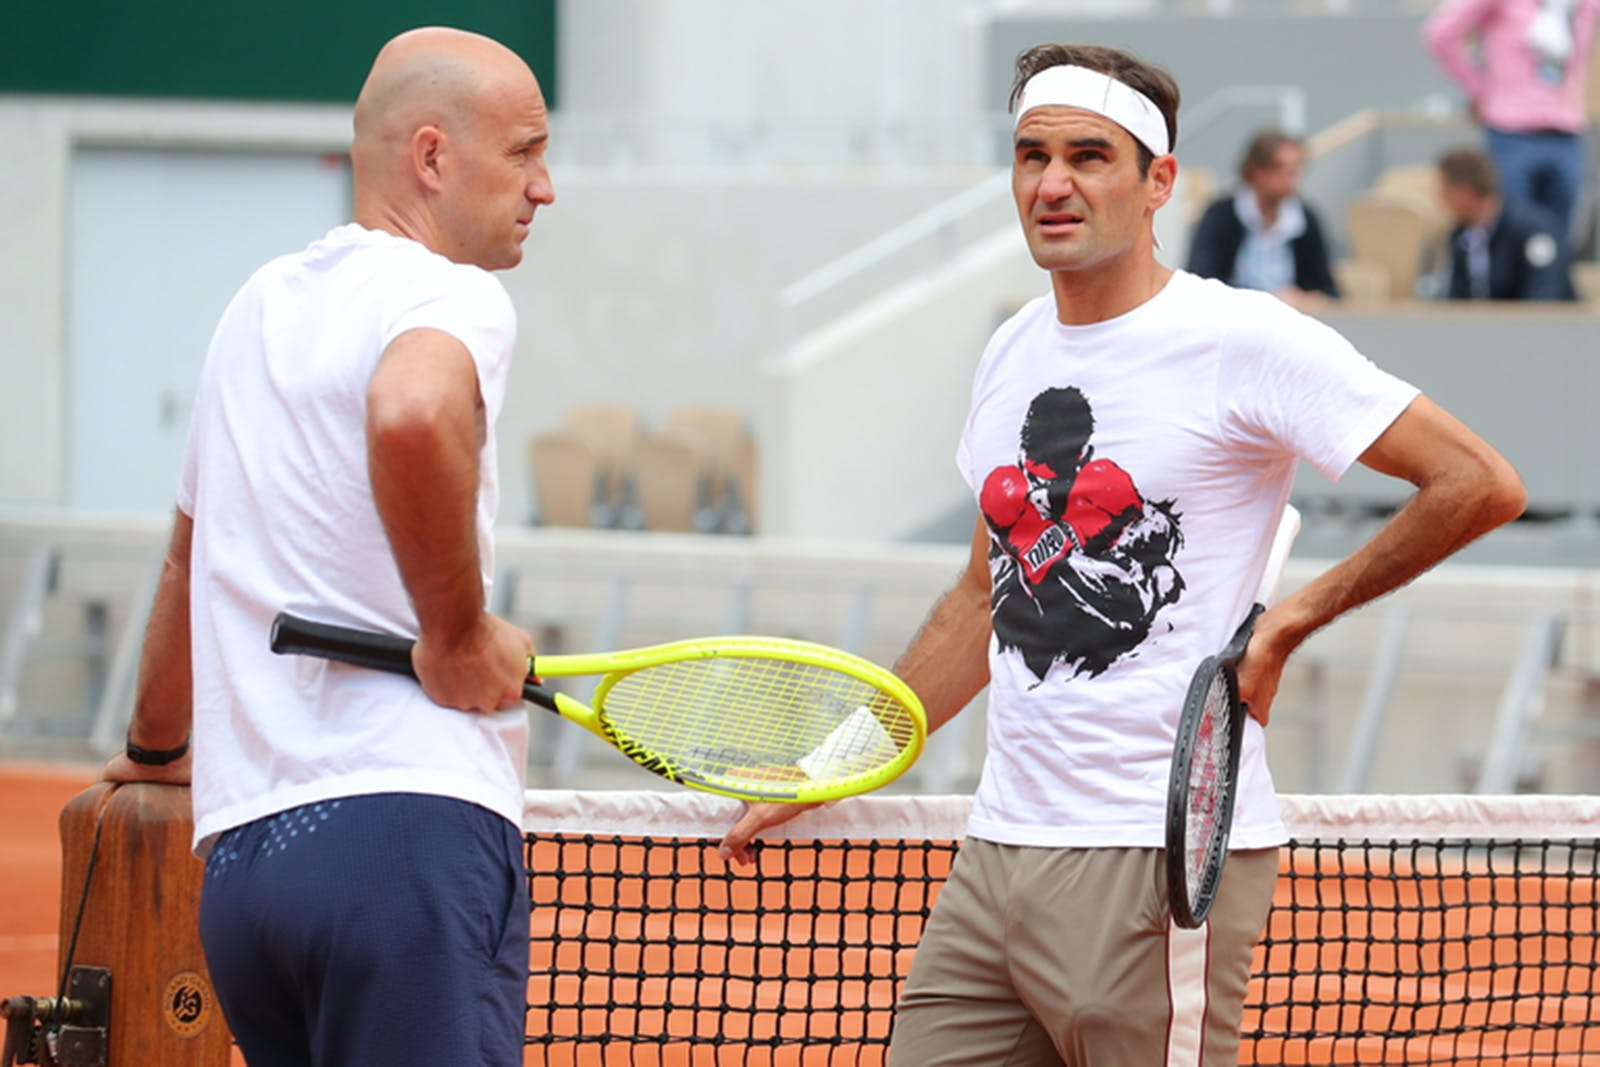 Roger Federer and coach Ivan Ljubicic at practice